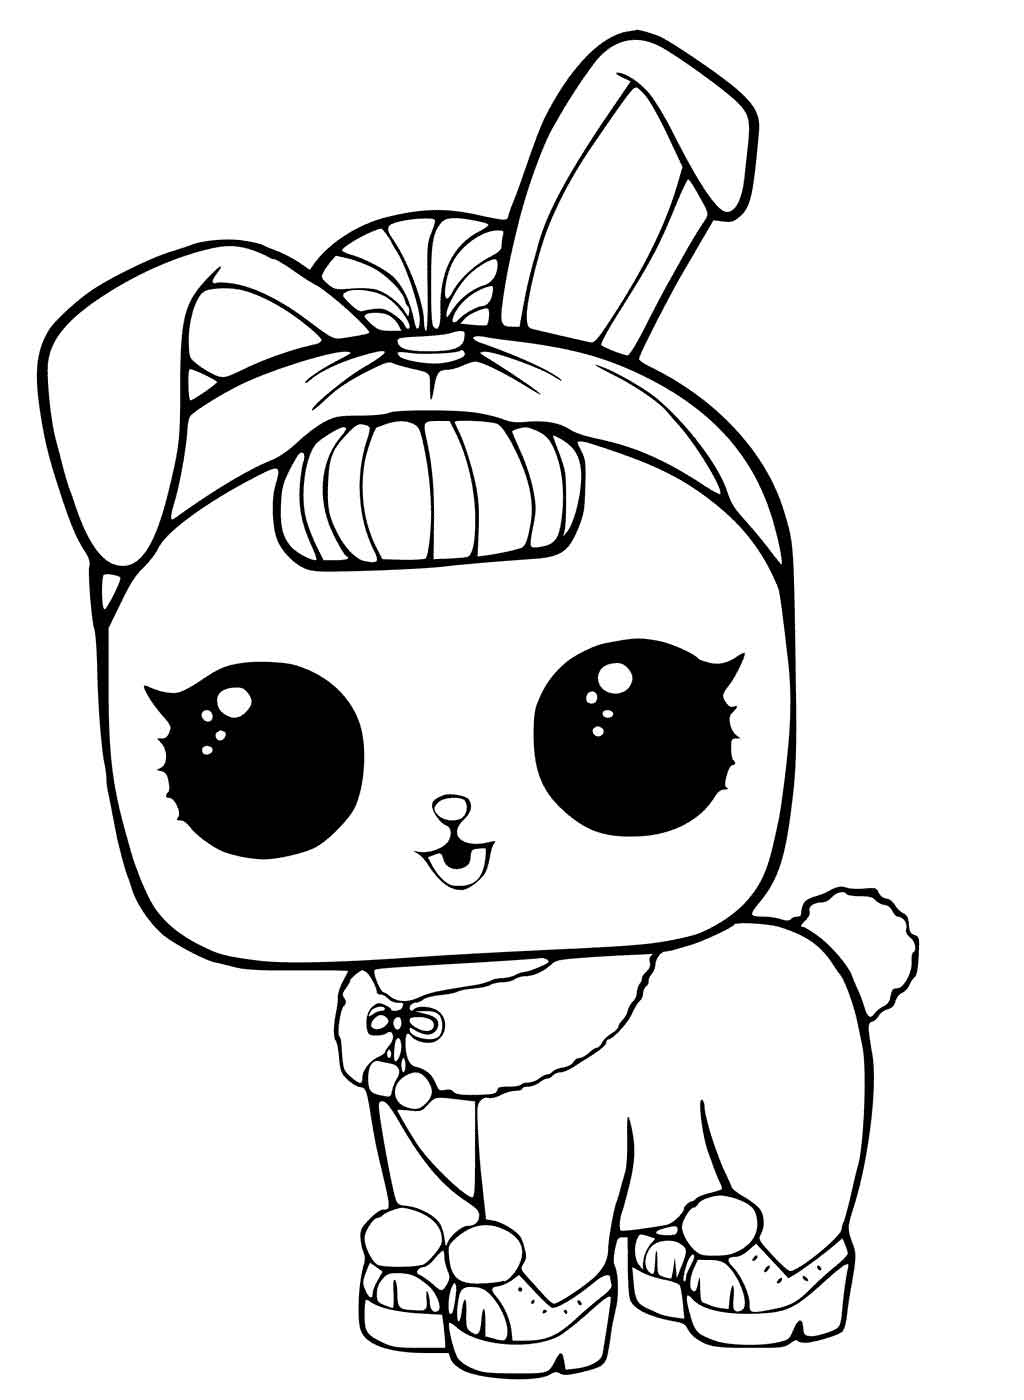 lol doll cat coloring pages lilbabycatjpg 392465 pixels lol dolls baby coloring pages cat coloring lol doll